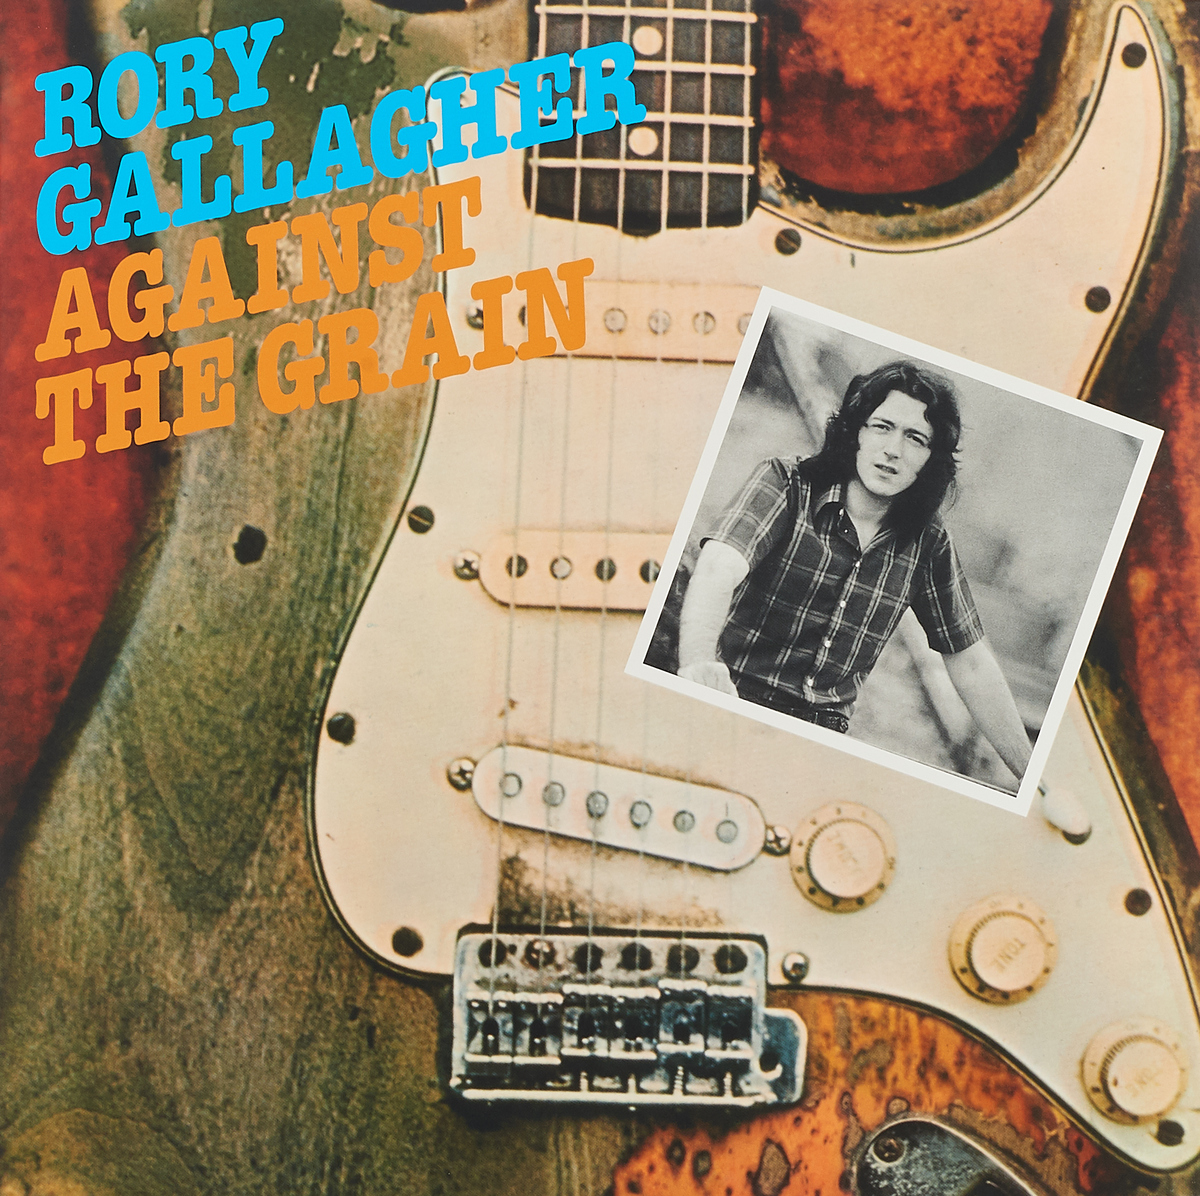 Рори Галлахер Rory Gallagher. Against The Grain (LP) рори галлахер gallagher rory live in europe hq lp